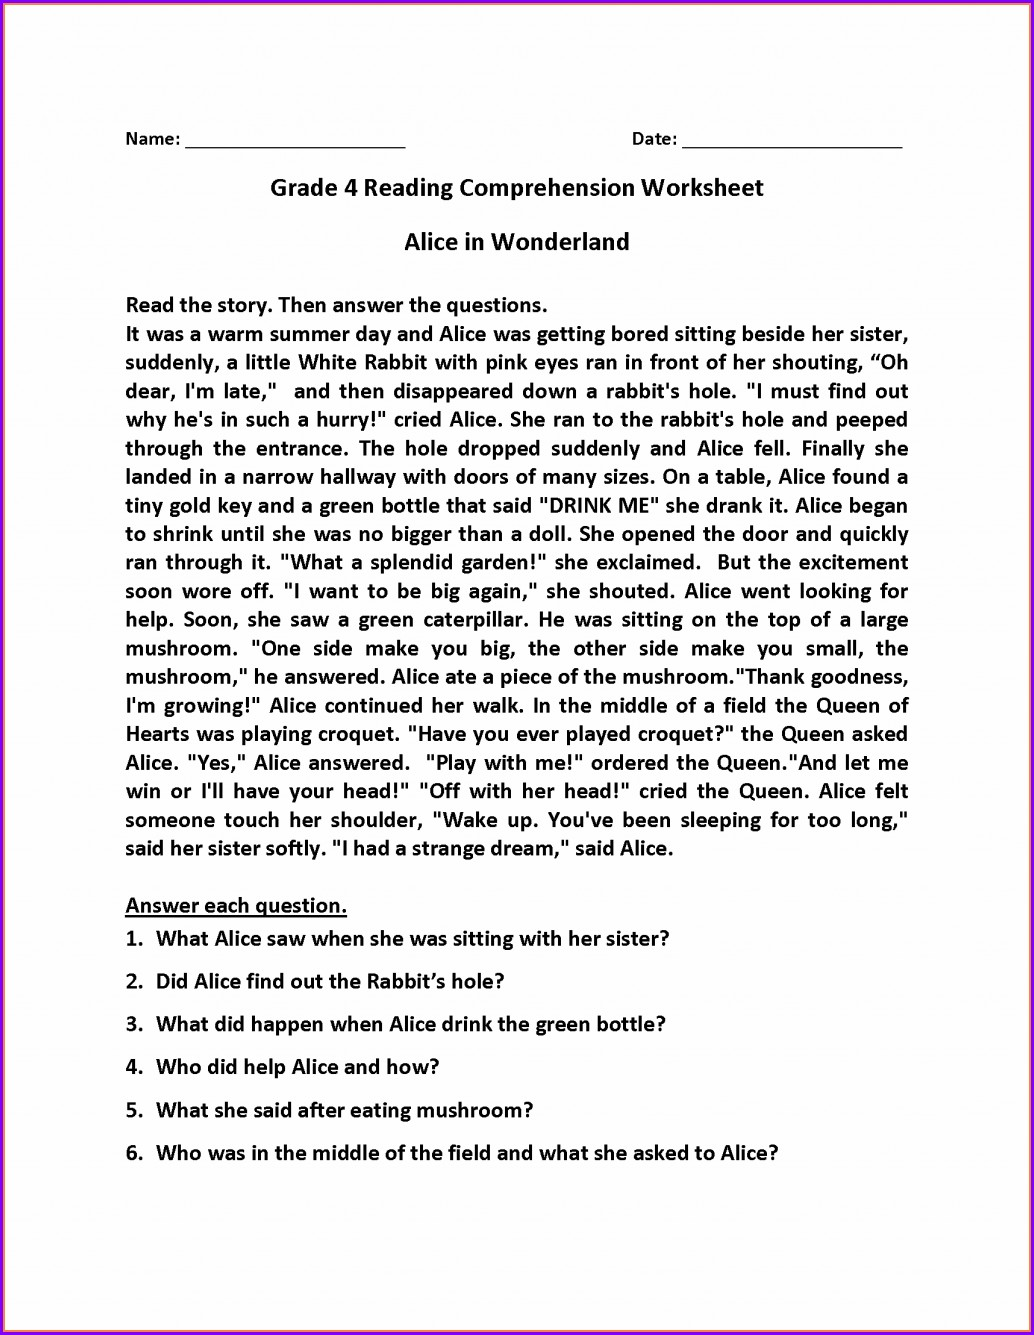 Comprehension Worksheet For 4th Grade